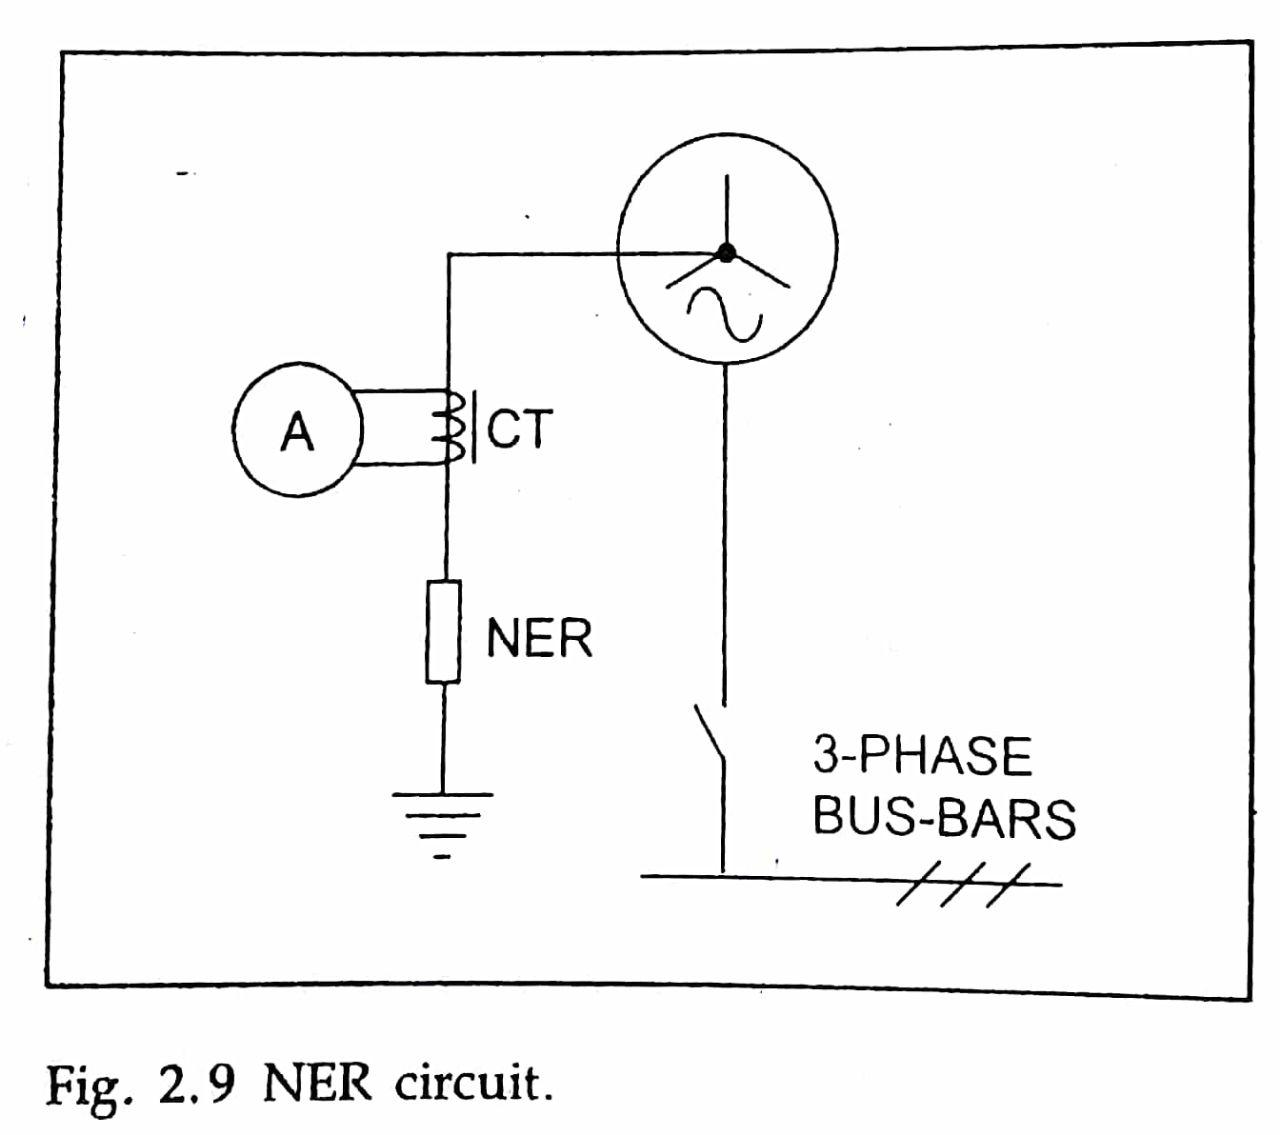 medium resolution of  be provided using current transformer ct if motor is healthy phasor sum of current measured by ct is zero if an earth fault occurs in motor phasor sum